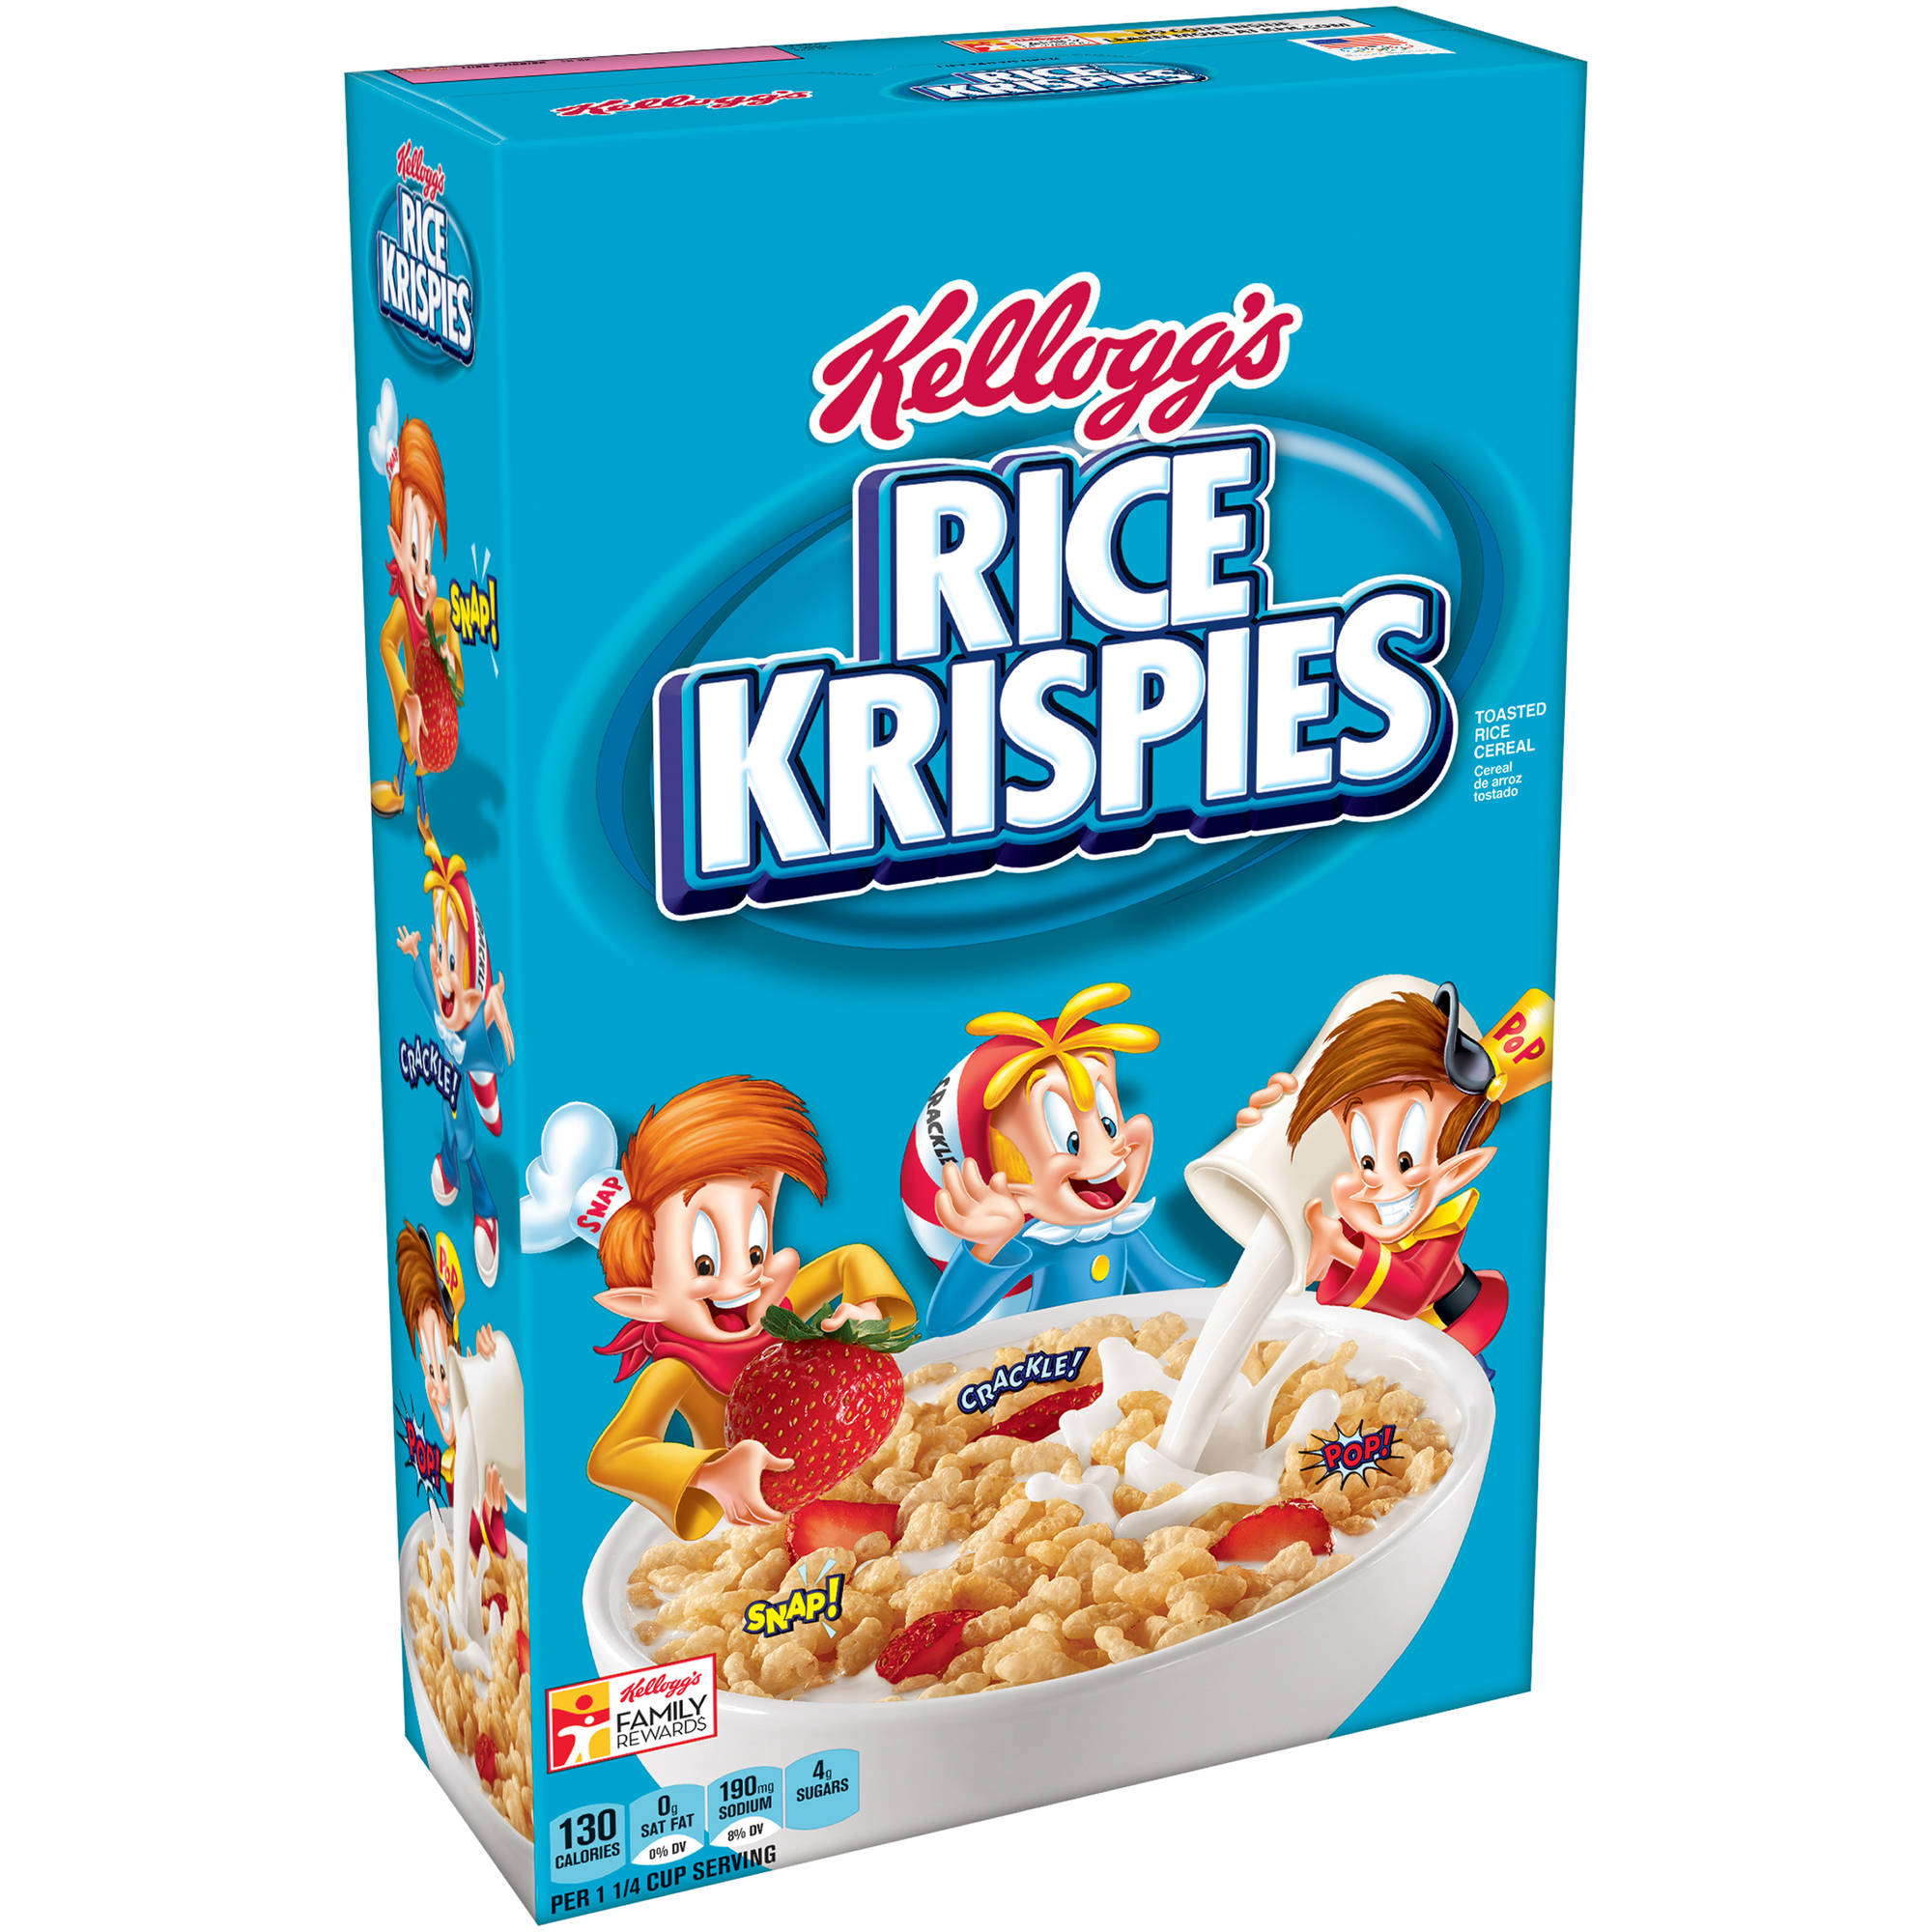 Kellogg's Rice Krispies Cold Cereal,  18 ounce Box